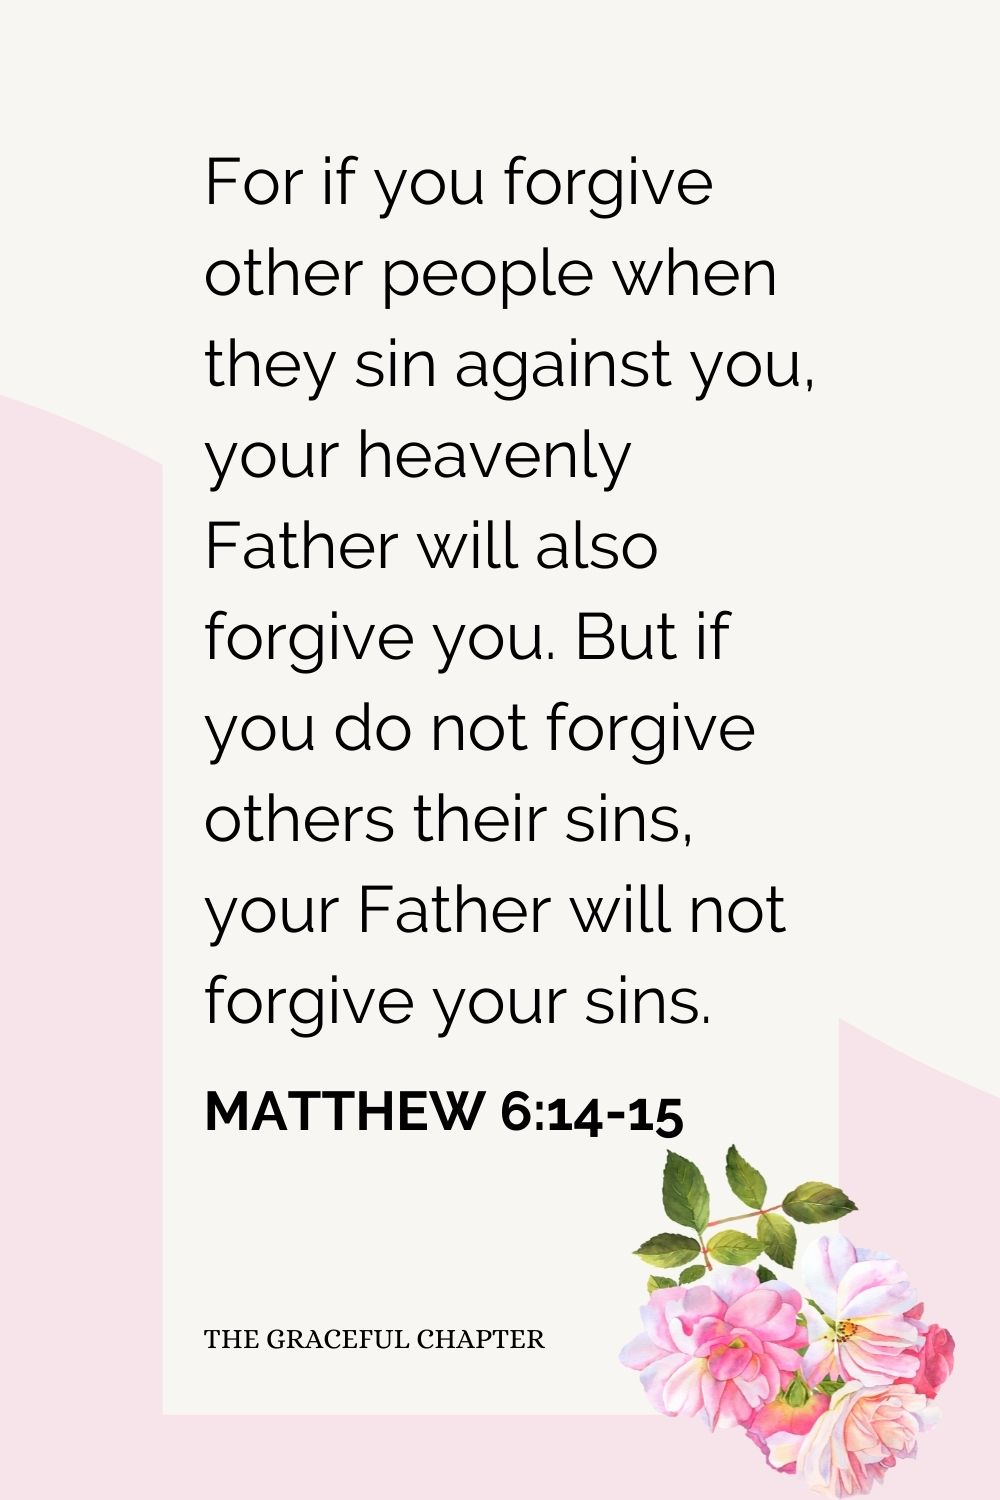 For if you forgive other people when they sin against you, your heavenly Father will also forgive you. But if you do not forgive others their sins, your Father will not forgive your sins. Matthew 6:14-15